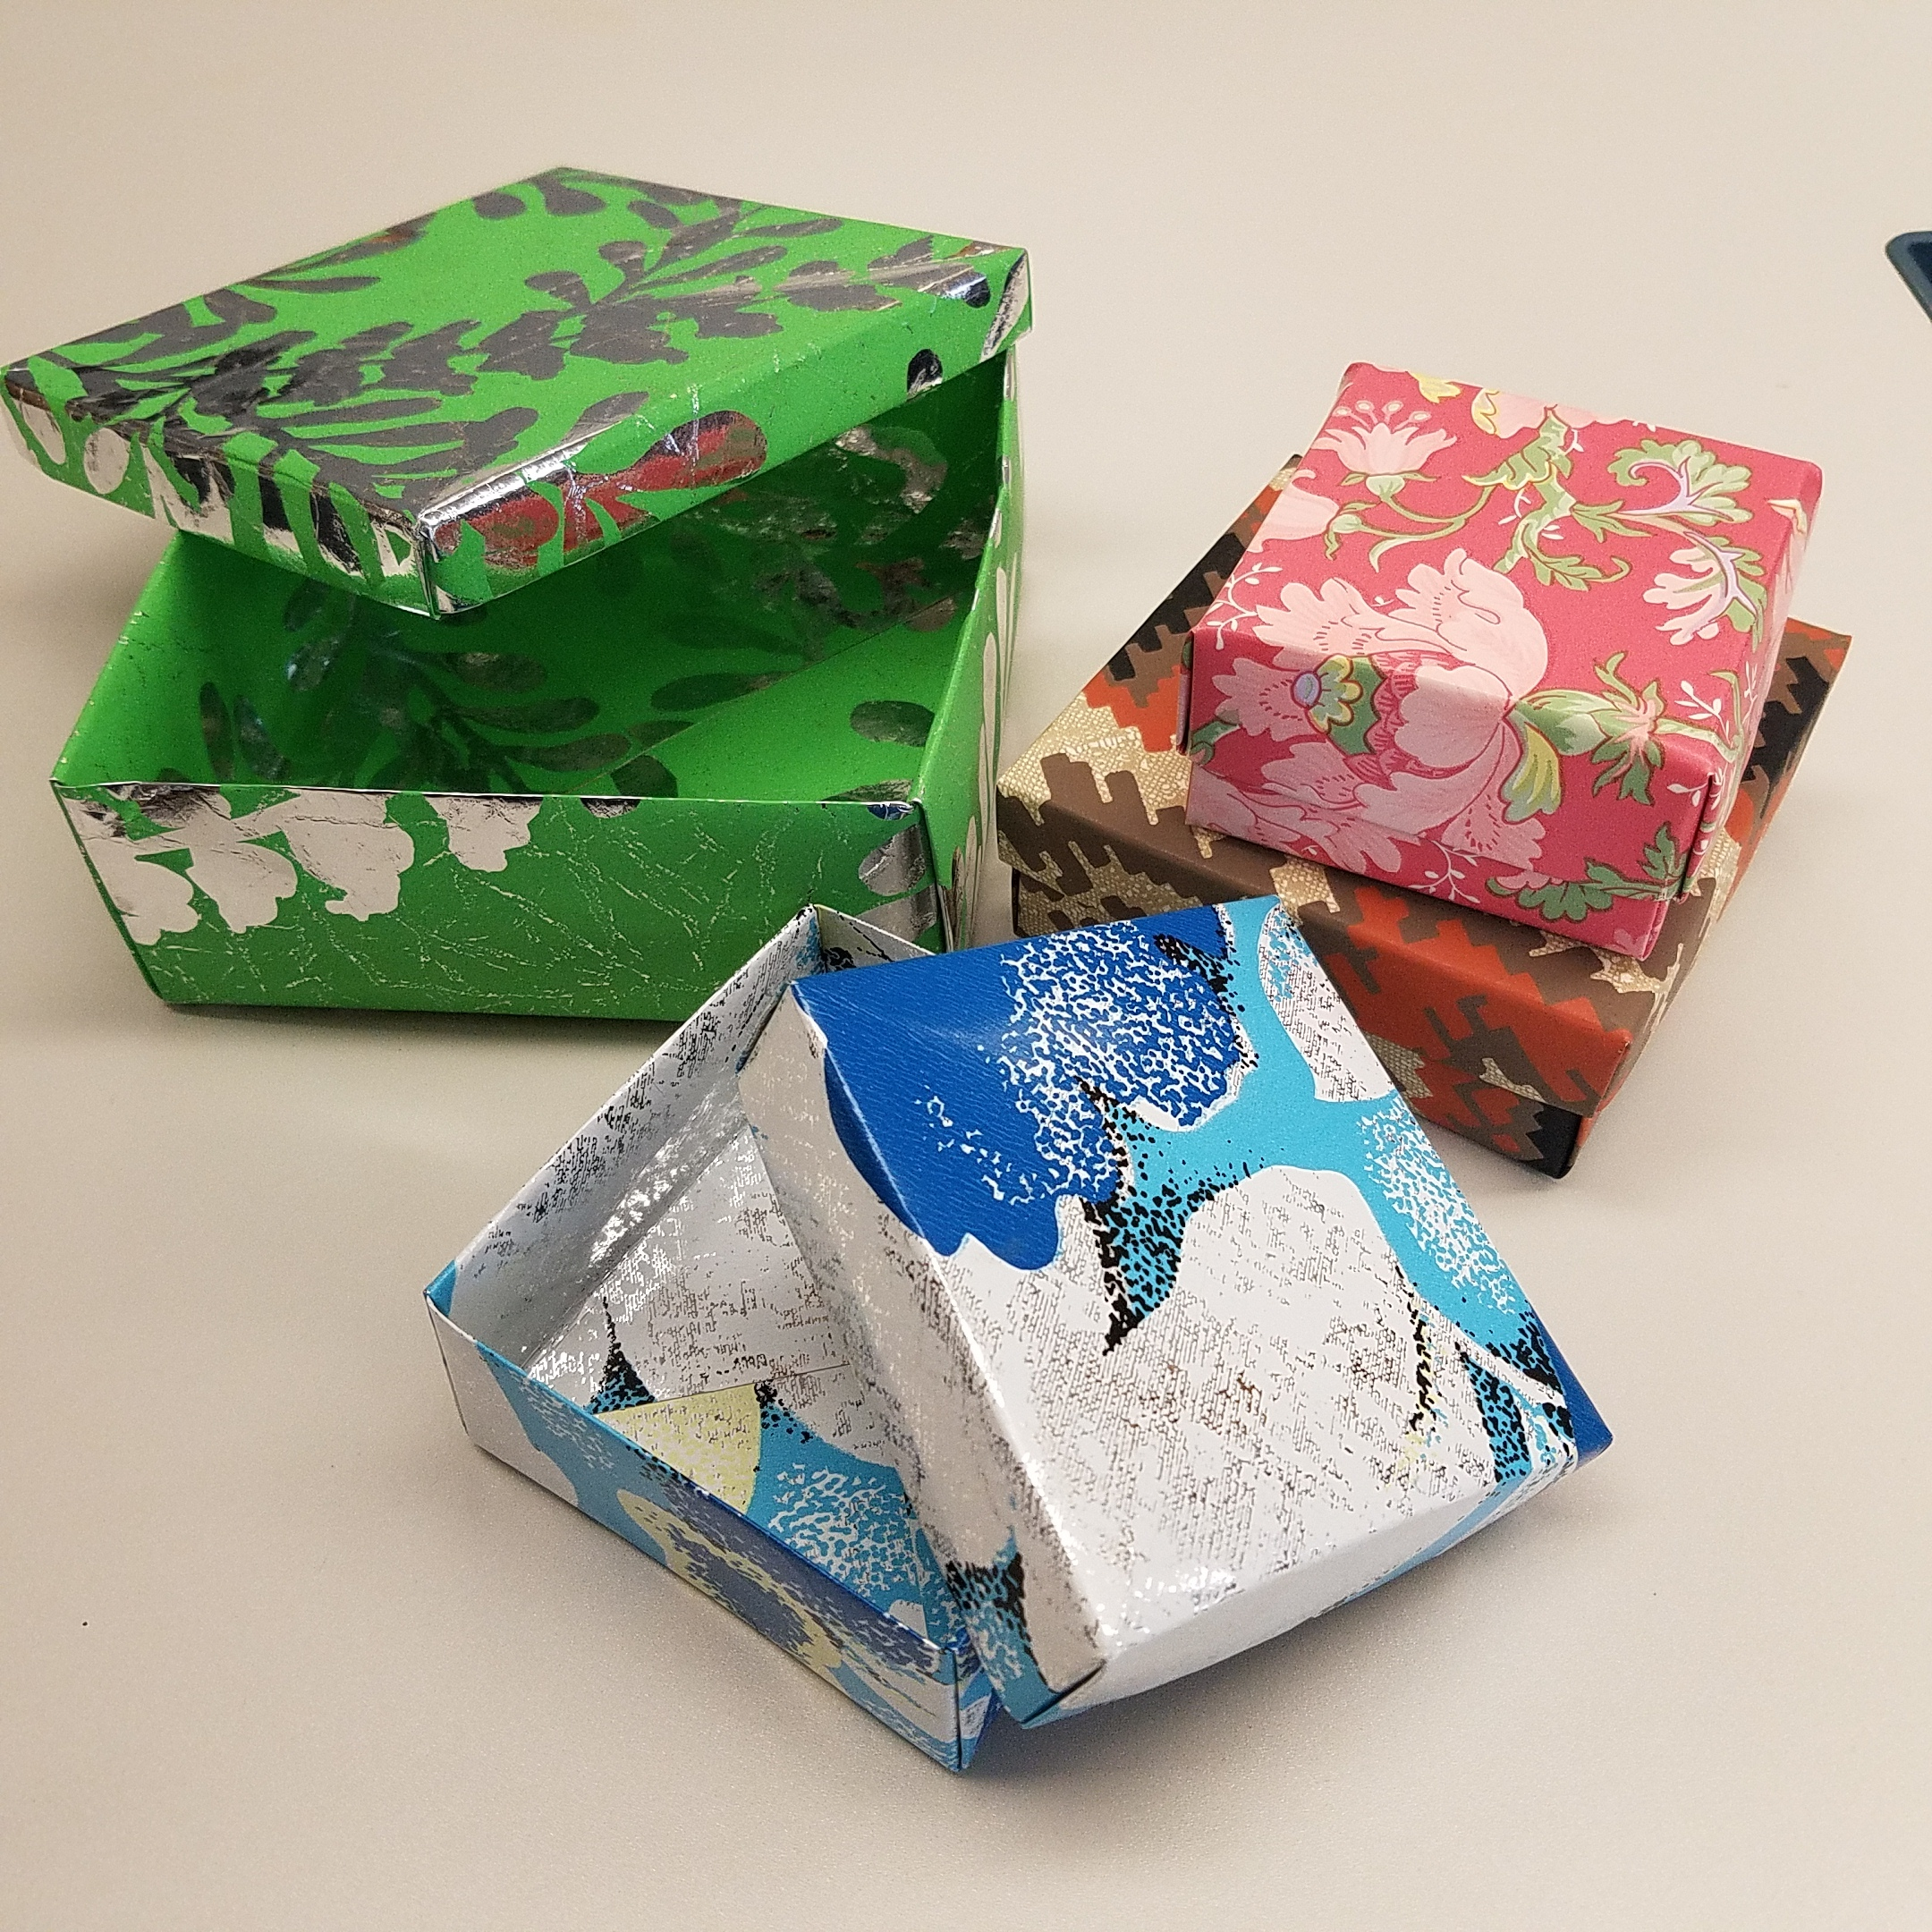 Origami Boxes.jpg